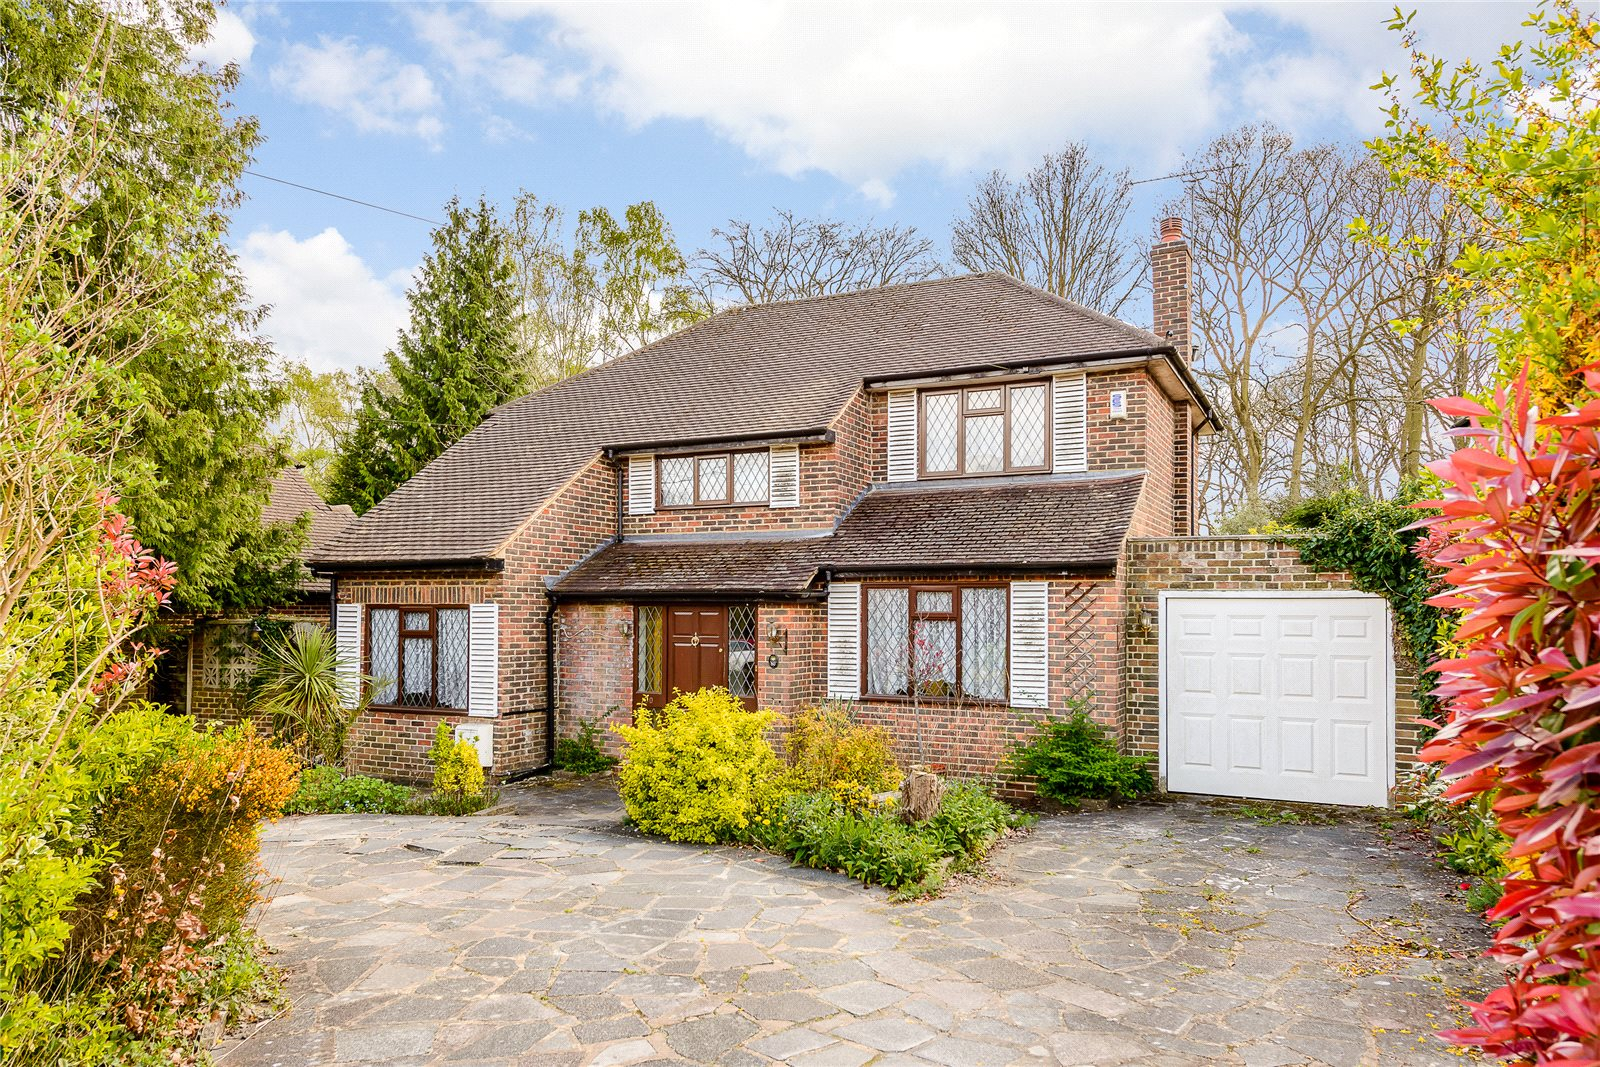 Additional photo for property listing at High Beeches, Gerrards Cross, Buckinghamshire, SL9 Gerrards Cross, イギリス